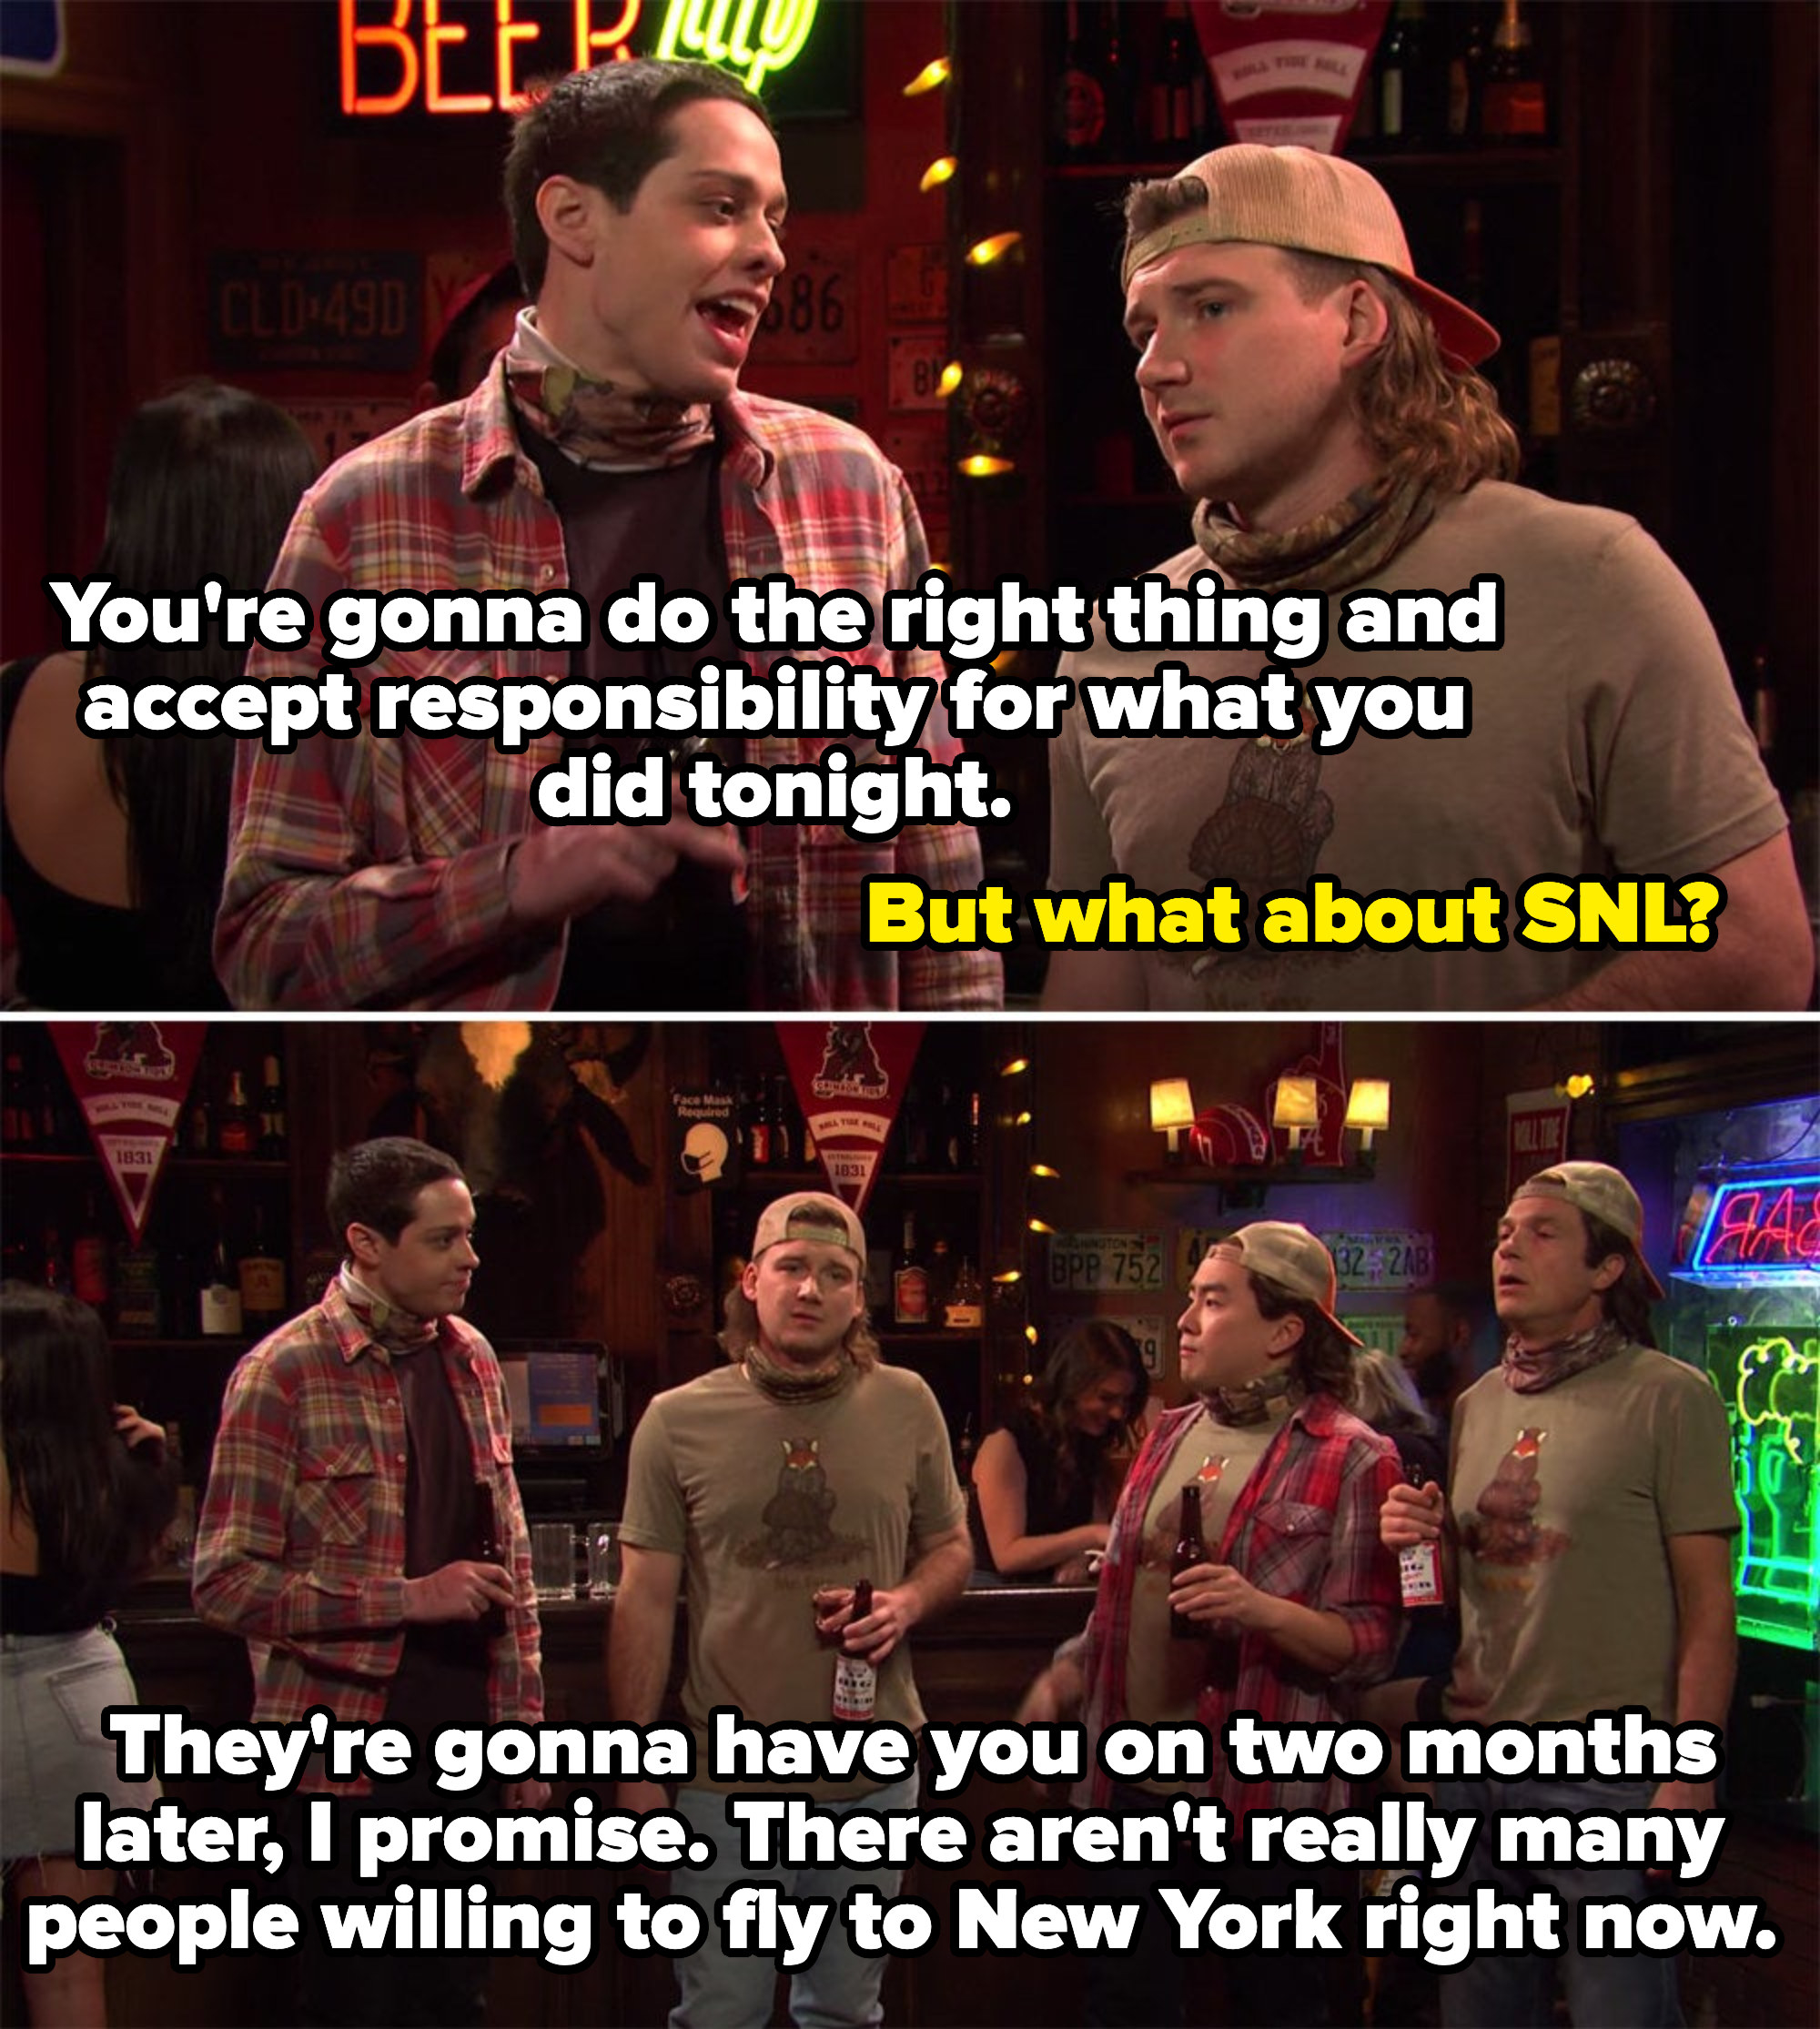 Pete saying Wallen will take responsibility and come back to SNL because not many people want to fly to new york now